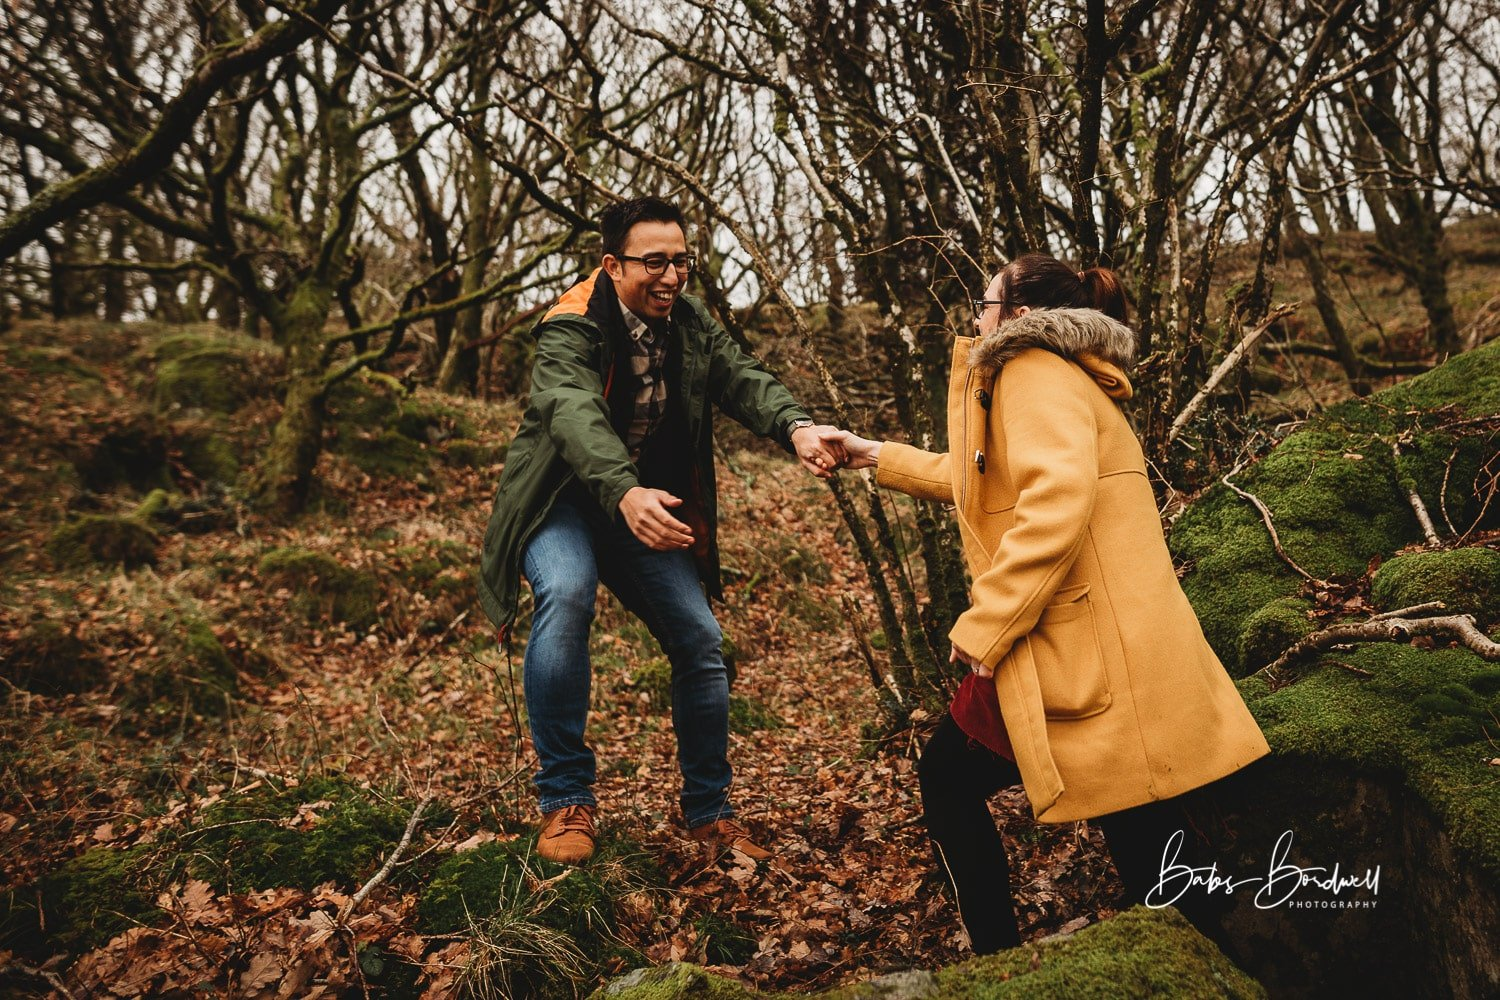 man helping his fiancee up a steep bit in a forest smiling